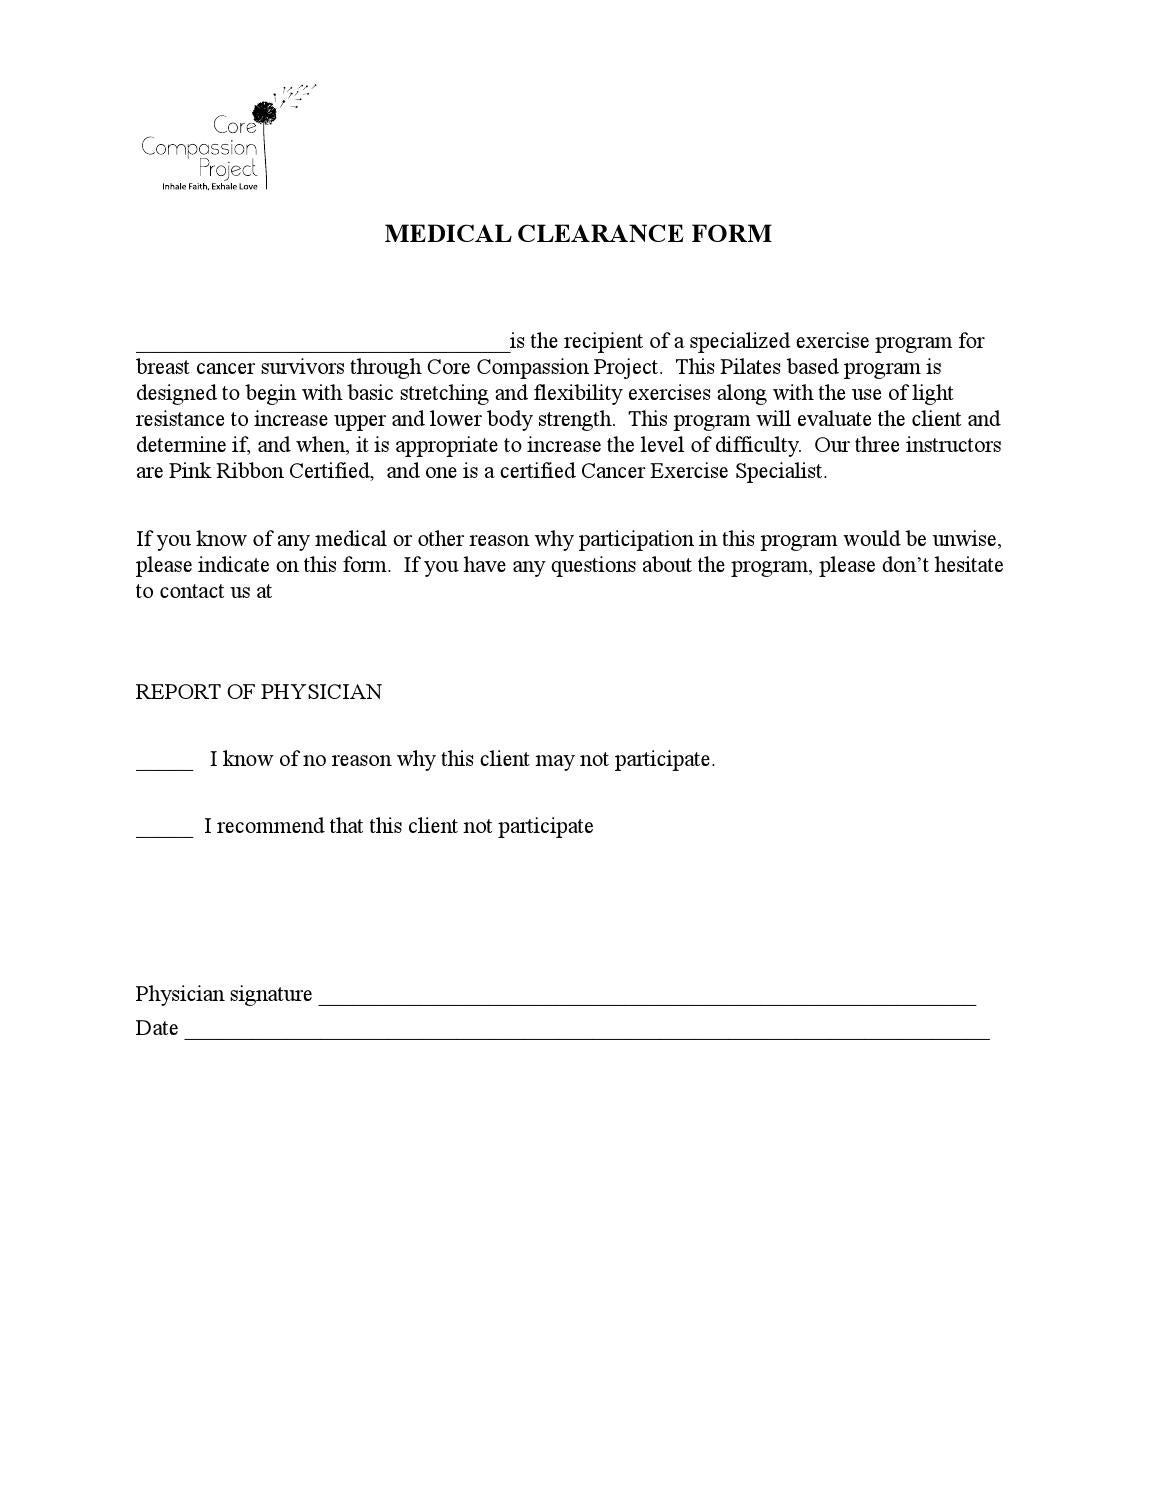 Medical Clearance Form By Core Compassion Project   Issuu